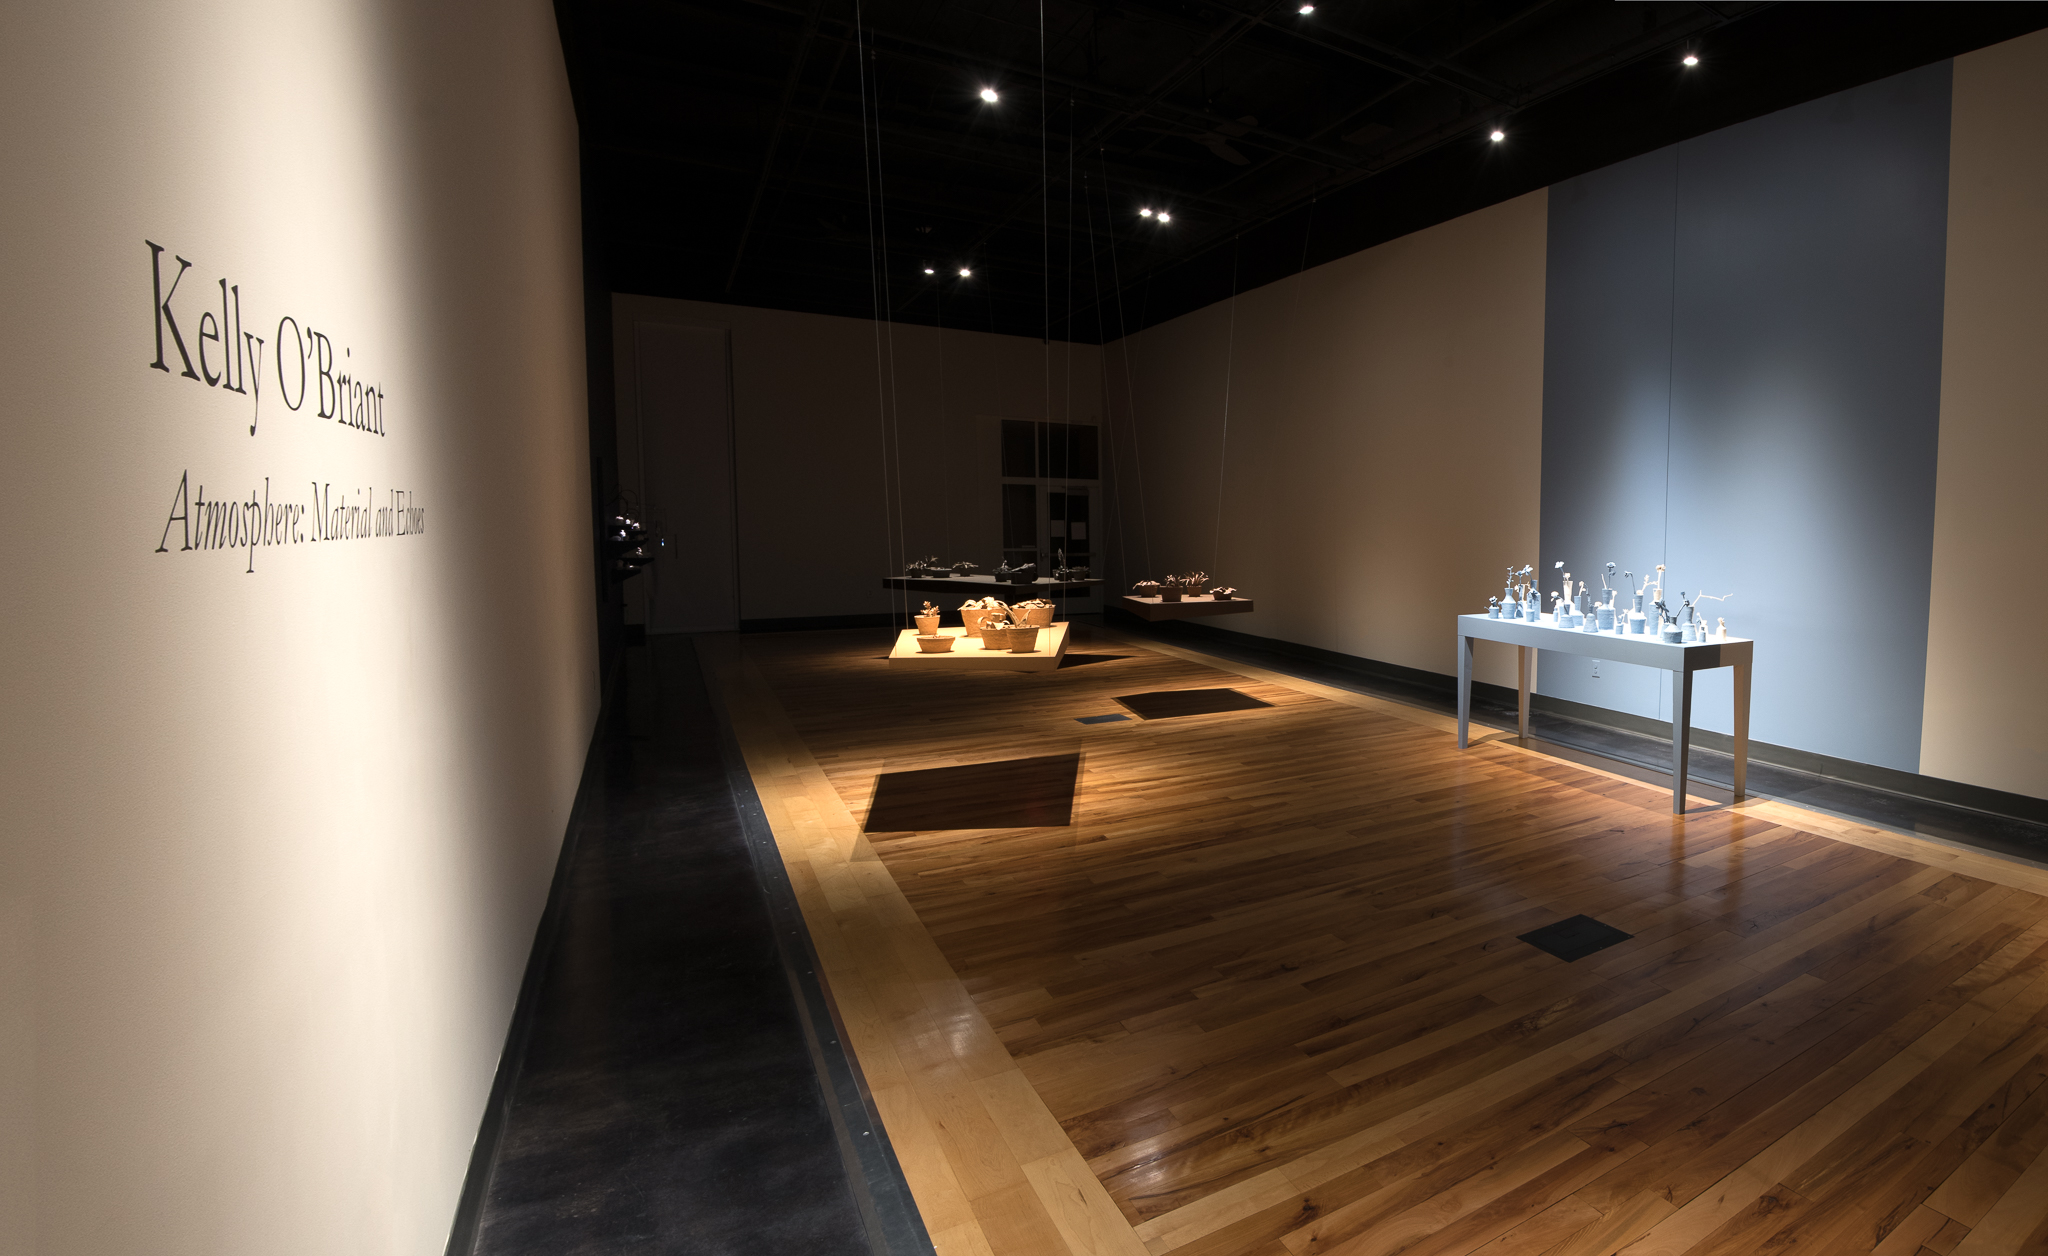 """Gallery installation image from """"Atmosphere: Materials and Echos""""."""